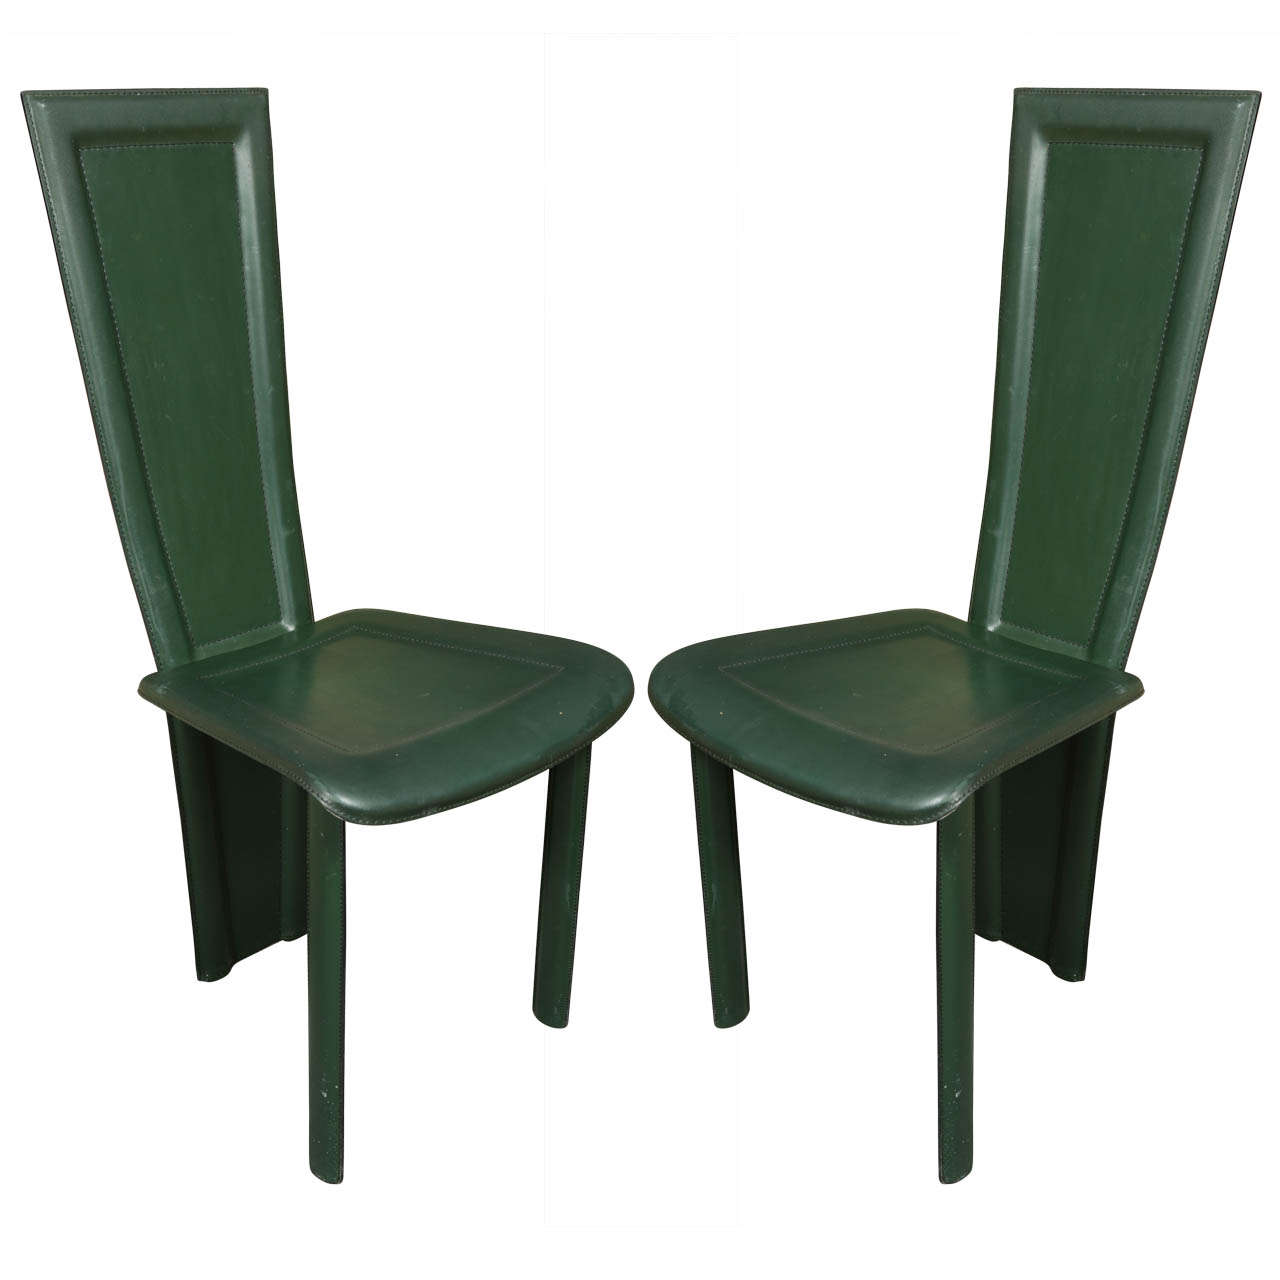 Pair Of High Back Leather Chairs By Artedi At 1stdibs